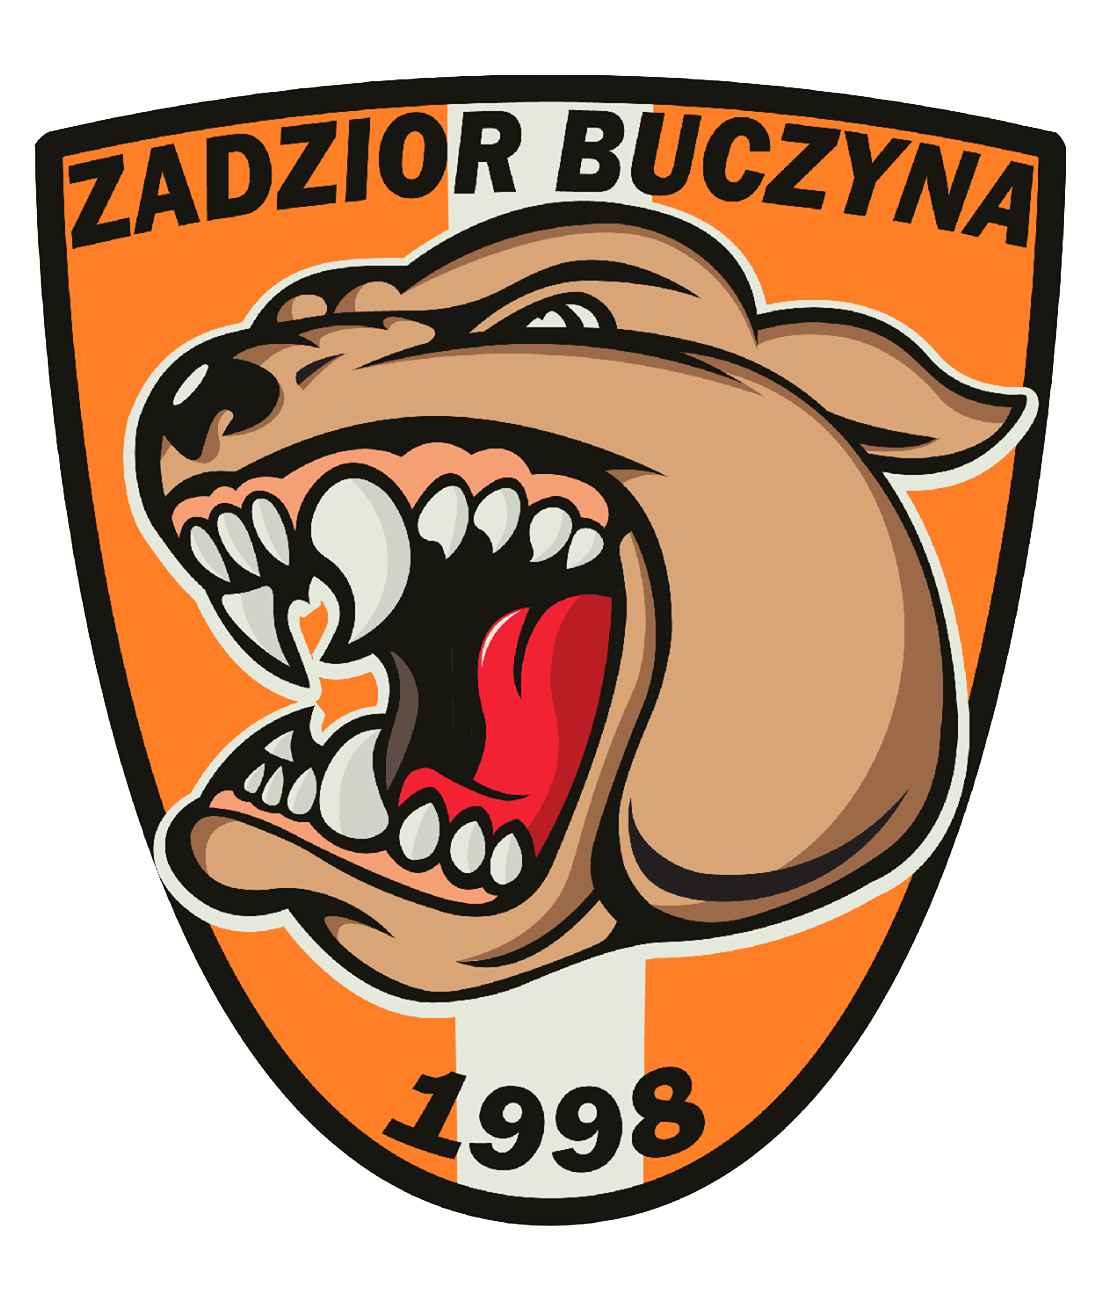 You are currently viewing LZS Zadzior Buczyna